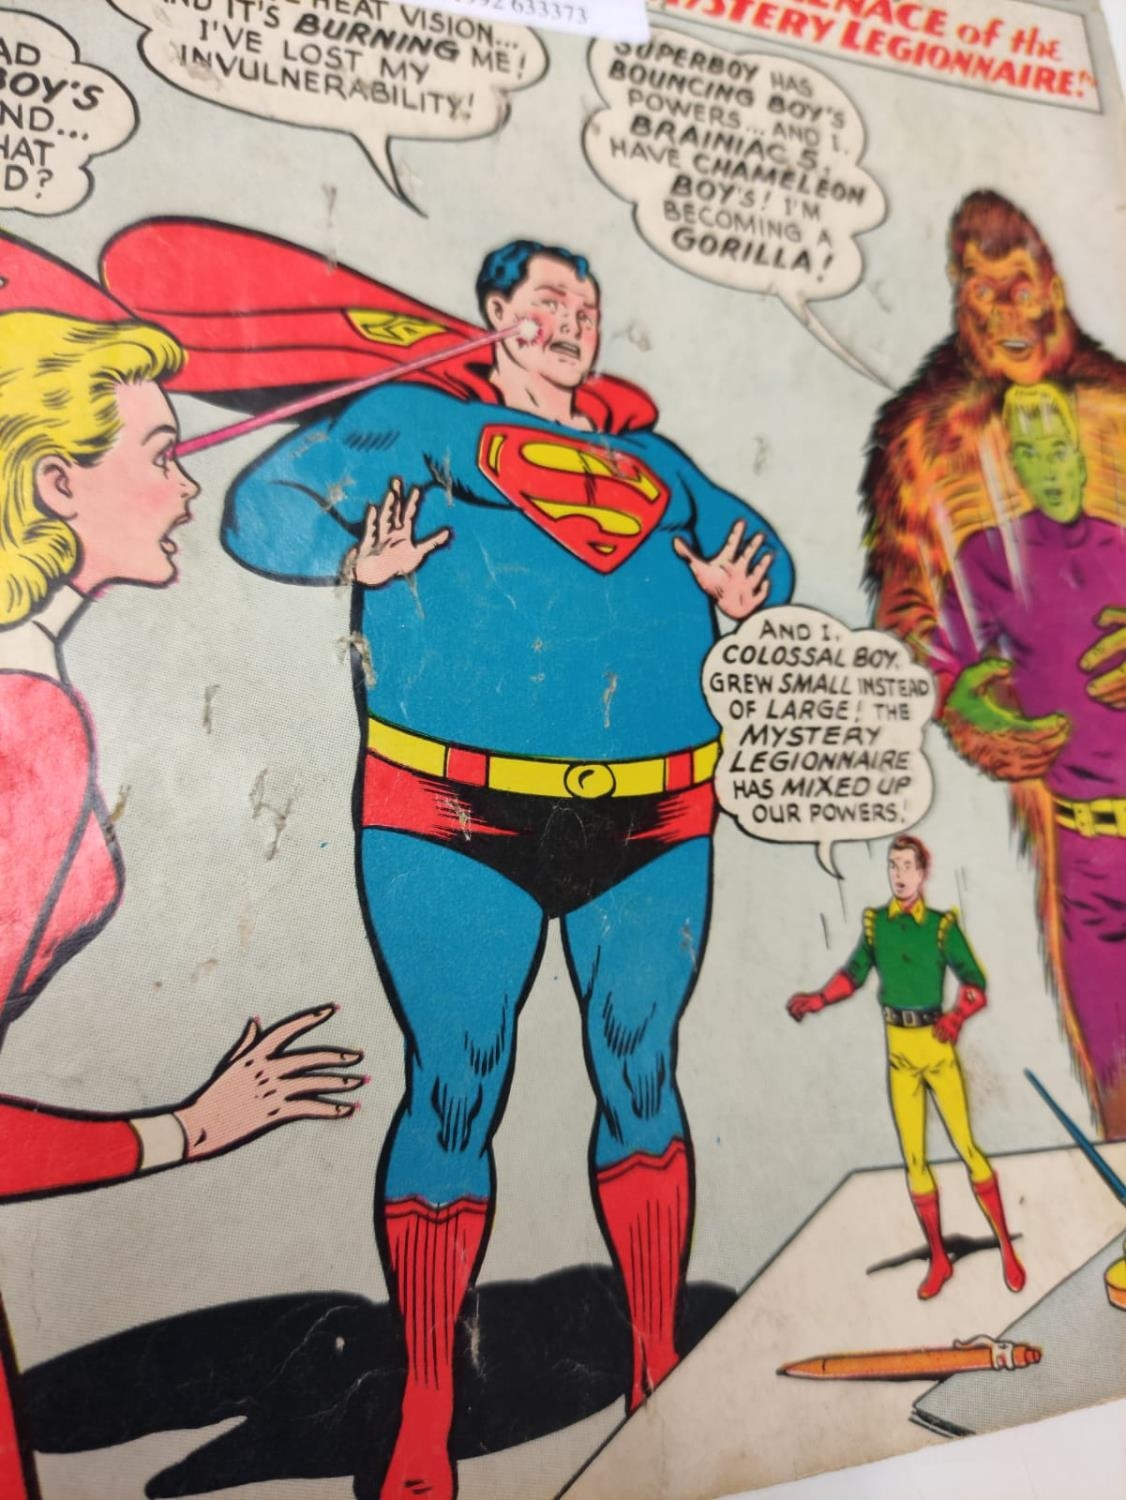 5 editions of DC Adventure Comics featuring Super-boy. - Image 12 of 19